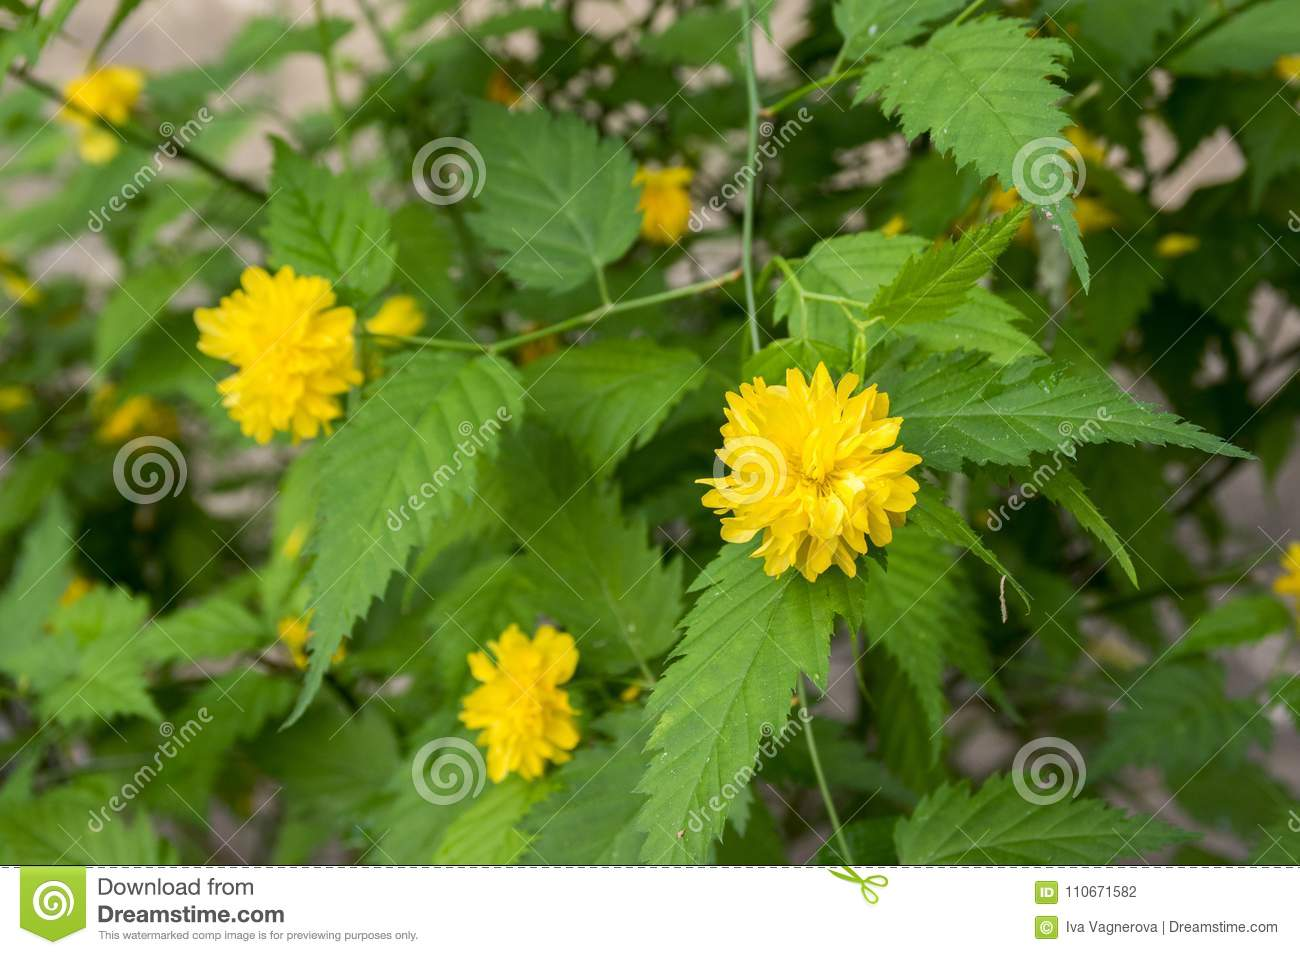 Kerria japonica pleniflora cultivar in bloom yellow flowers on download kerria japonica pleniflora cultivar in bloom yellow flowers on branches on shrub stock photo mightylinksfo